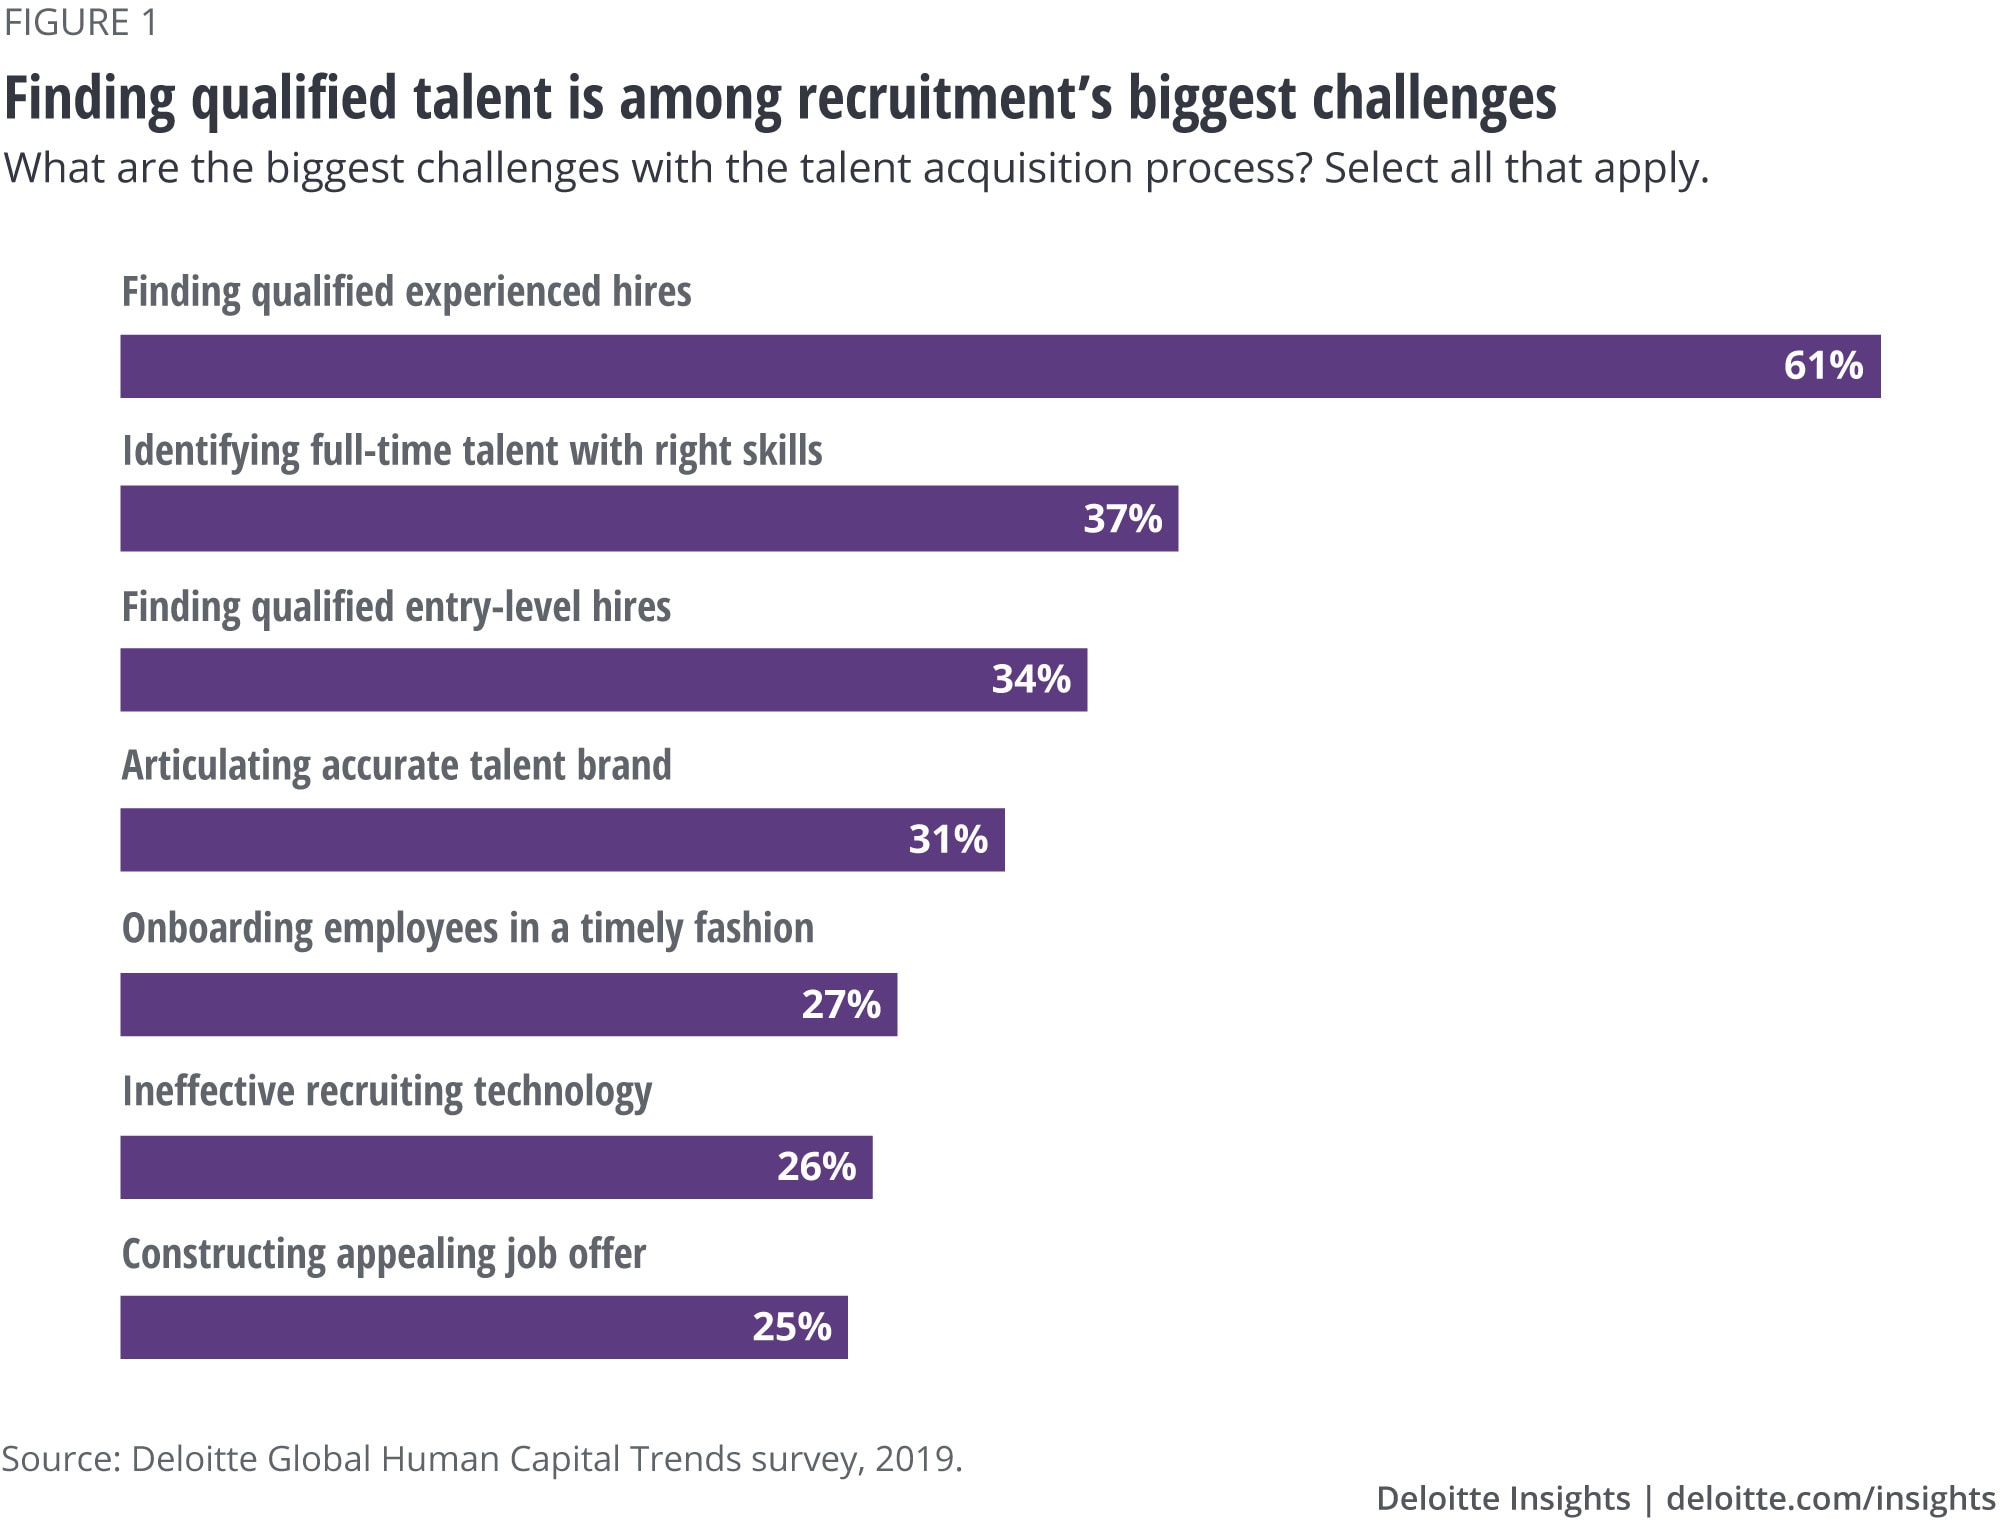 Finding qualified talent is among recruitment's biggest challenges